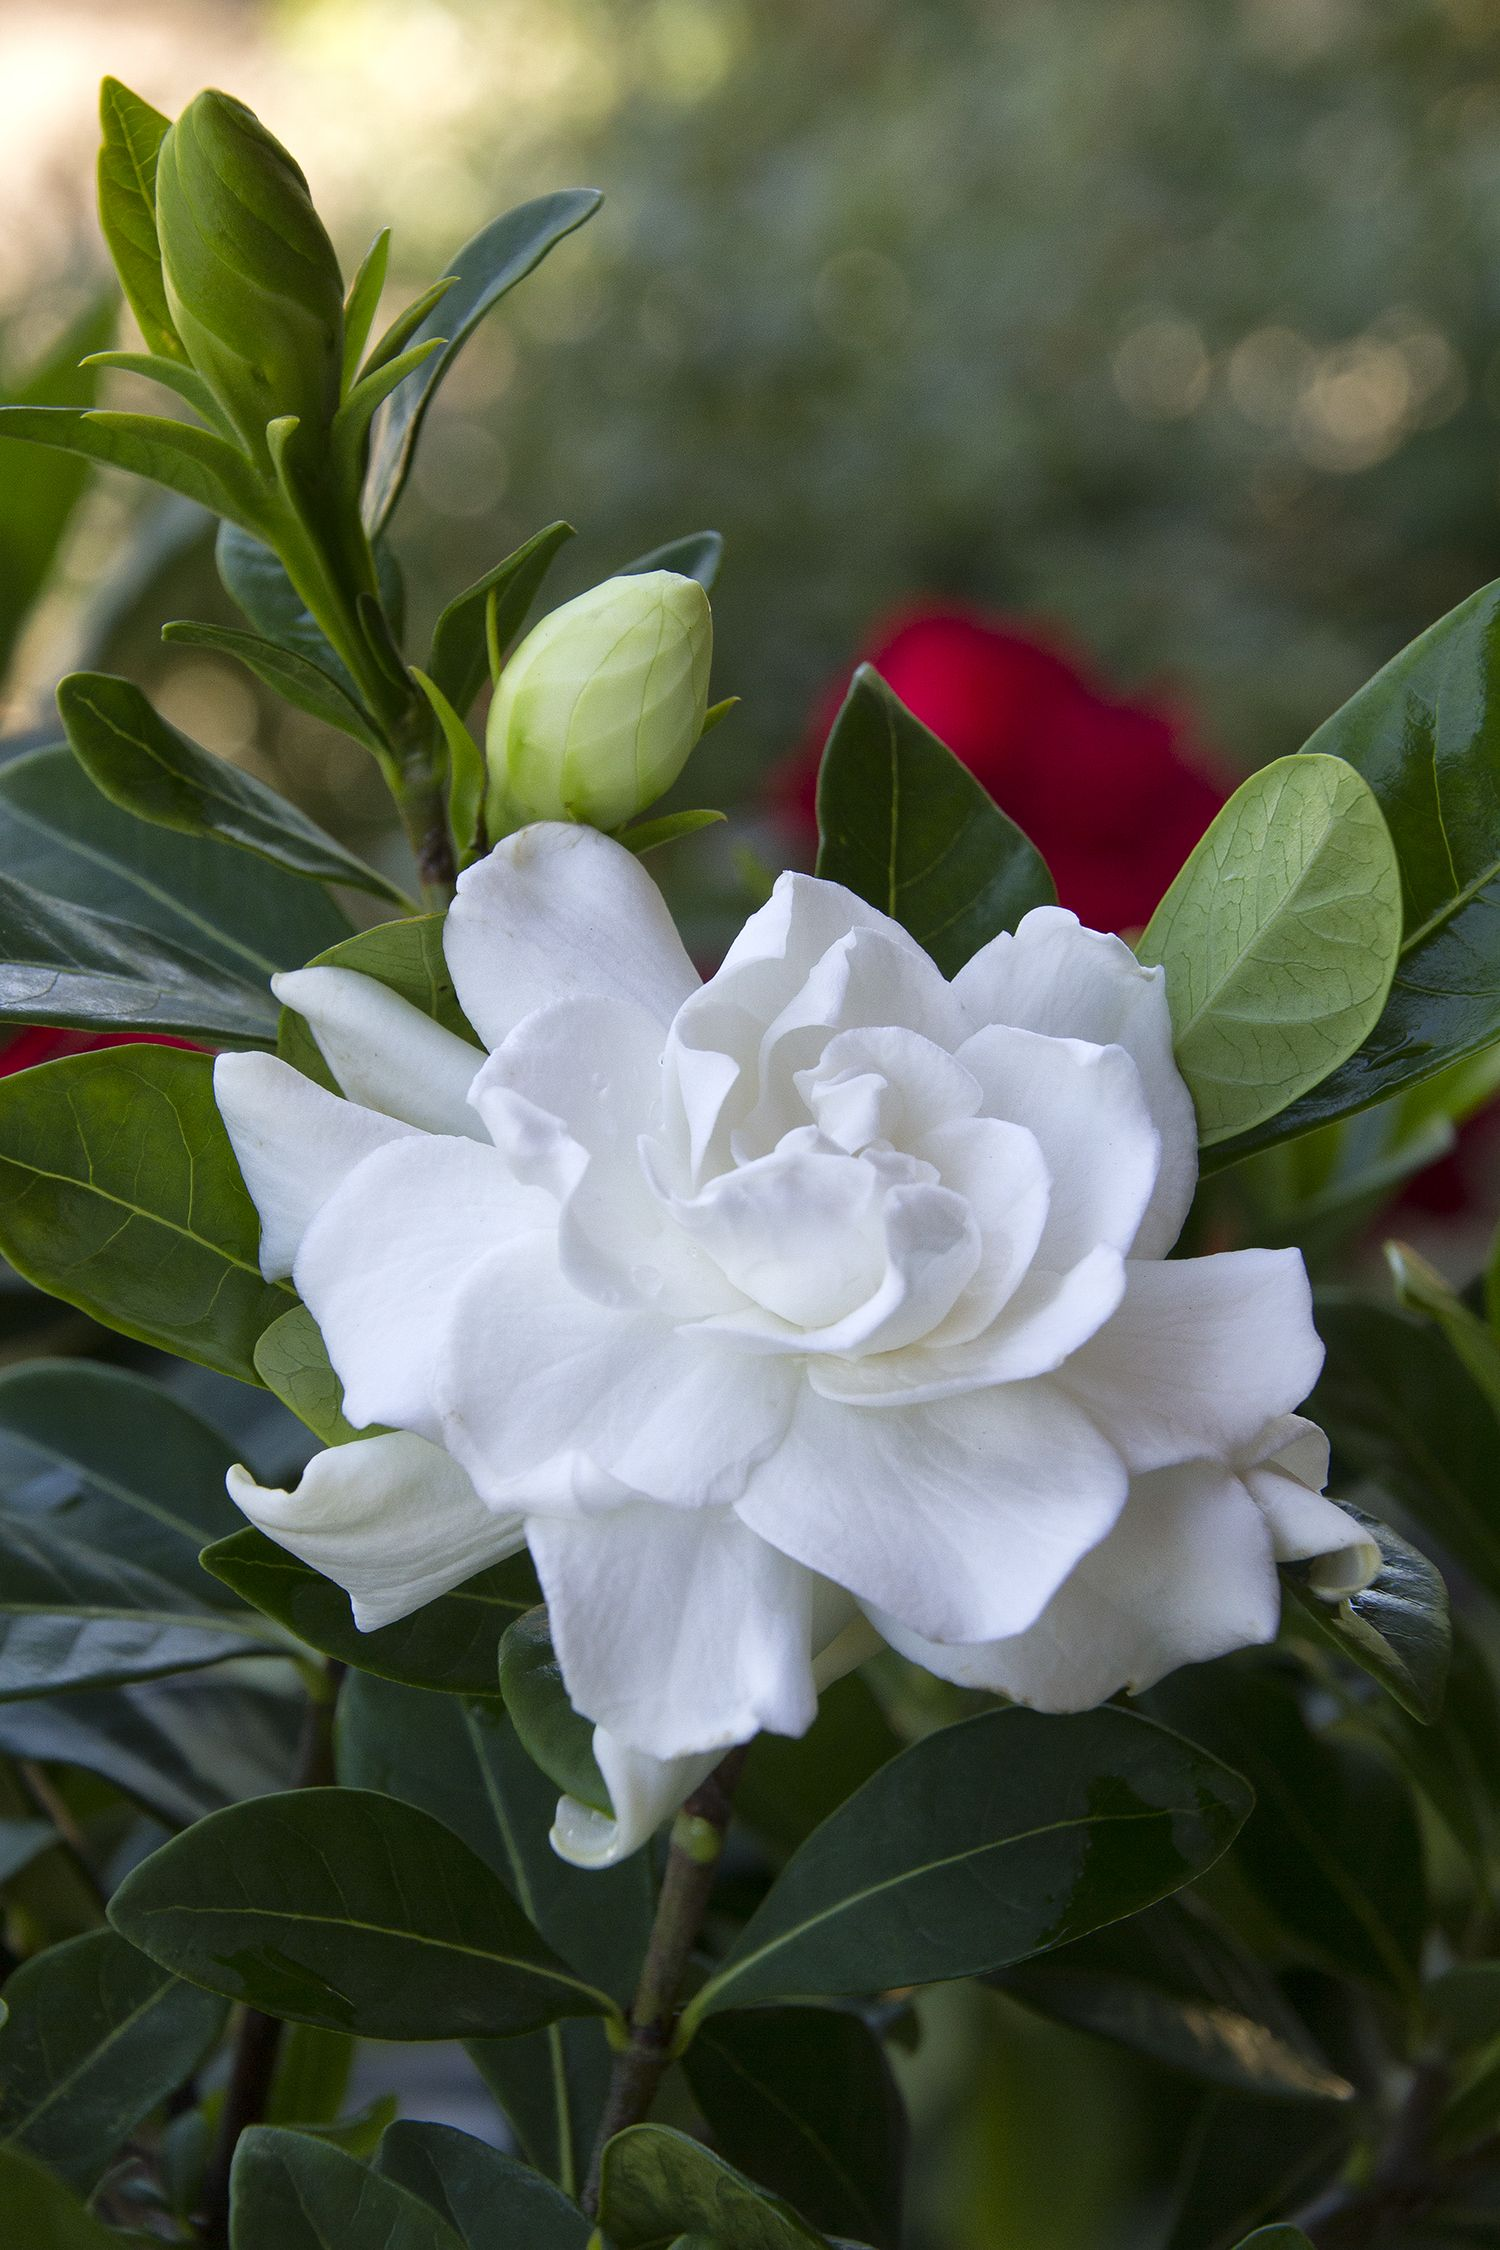 Everblooming Gardenia Monrovia Everblooming Gardenia Amazing Flowers Pretty Flowers White Flowers